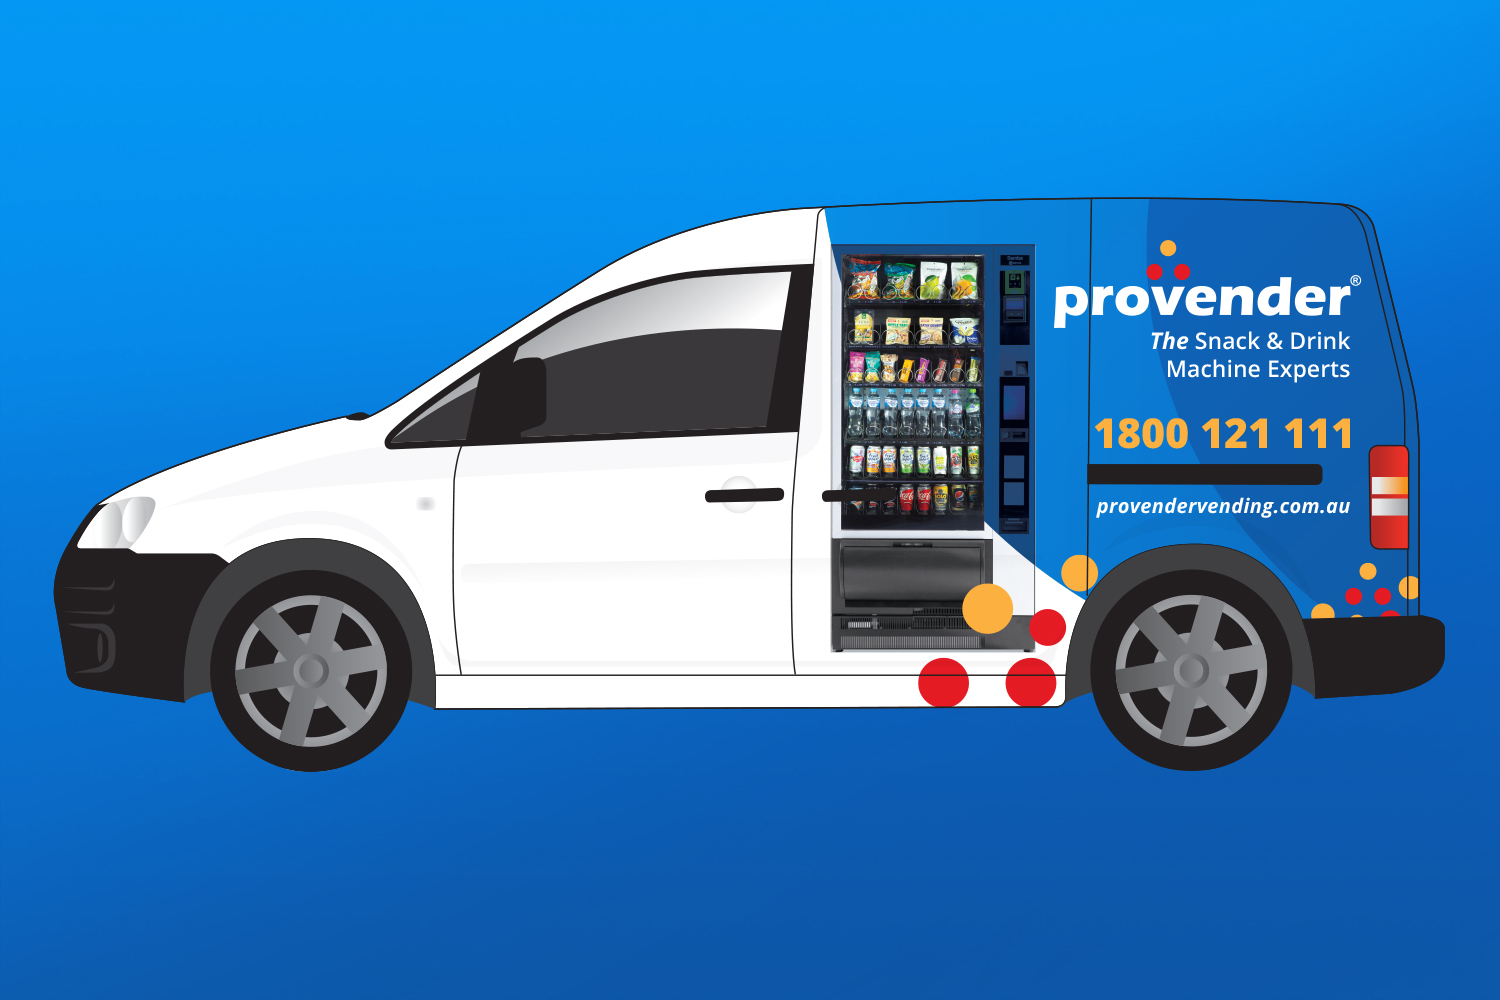 established-mobile-vending-business-for-sale-flexible-and-profitable-3